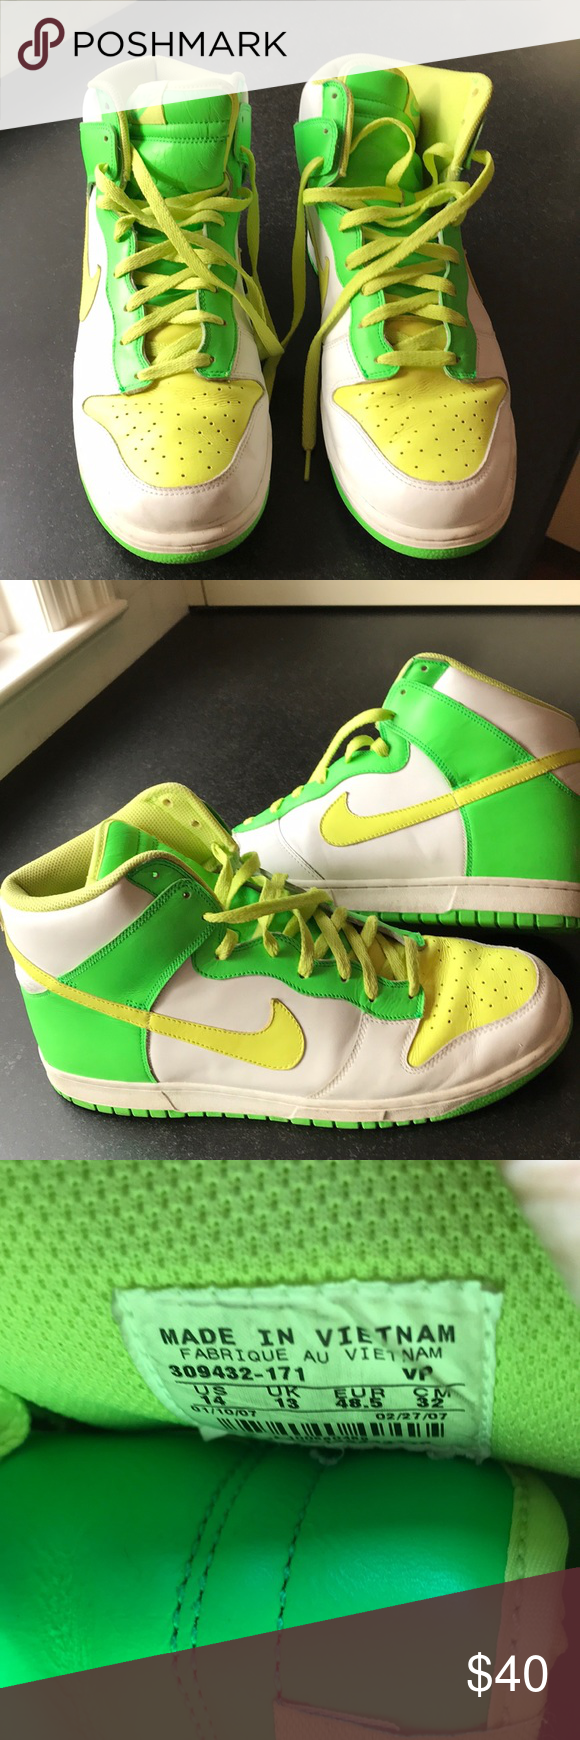 Nike Dunk High Pinterest Green nike shoes, Neon yellow and Neon